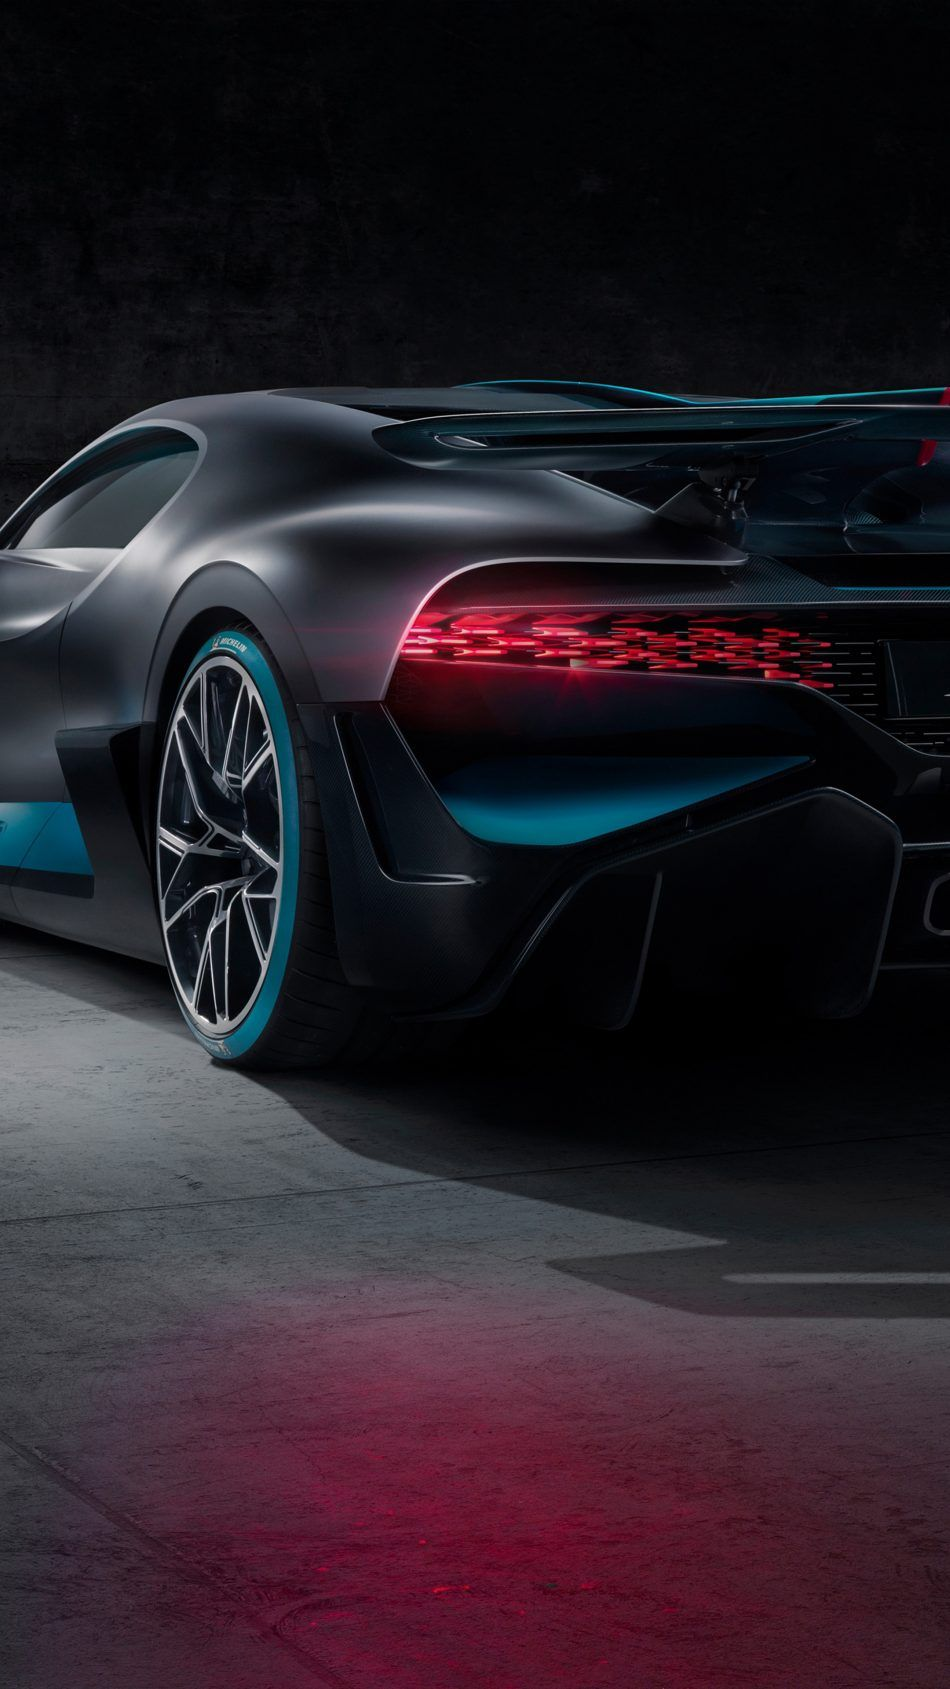 Bugatti Divo 2019 Car Wallpaper For Mobile Car Wallpapers Bugatti